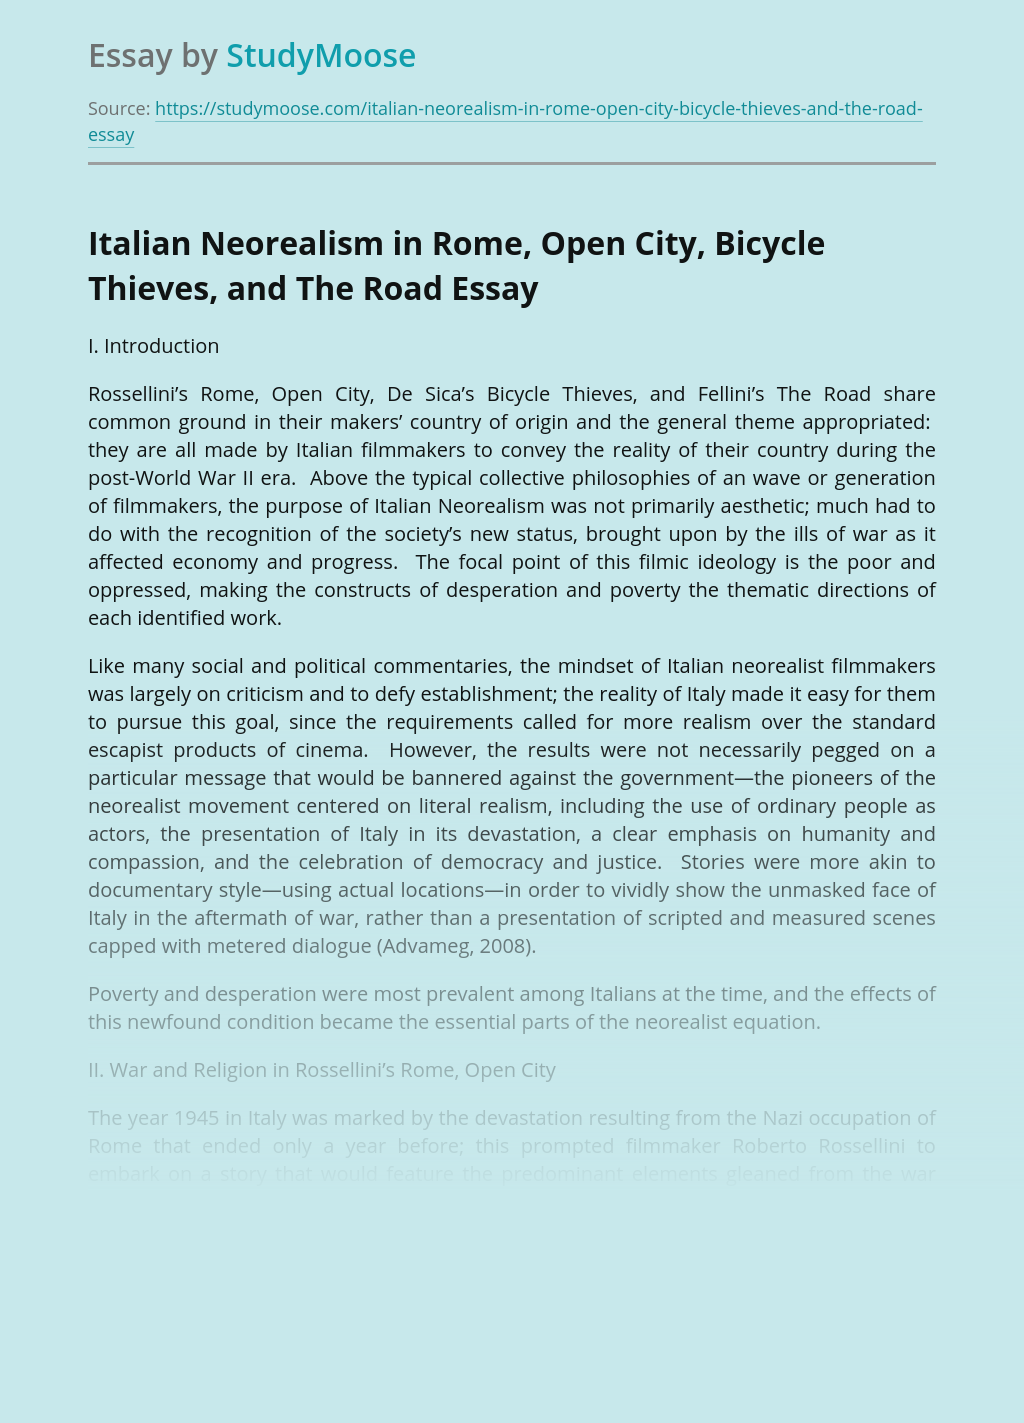 Italian Neorealism in Rome, Open City, Bicycle Thieves, and The Road